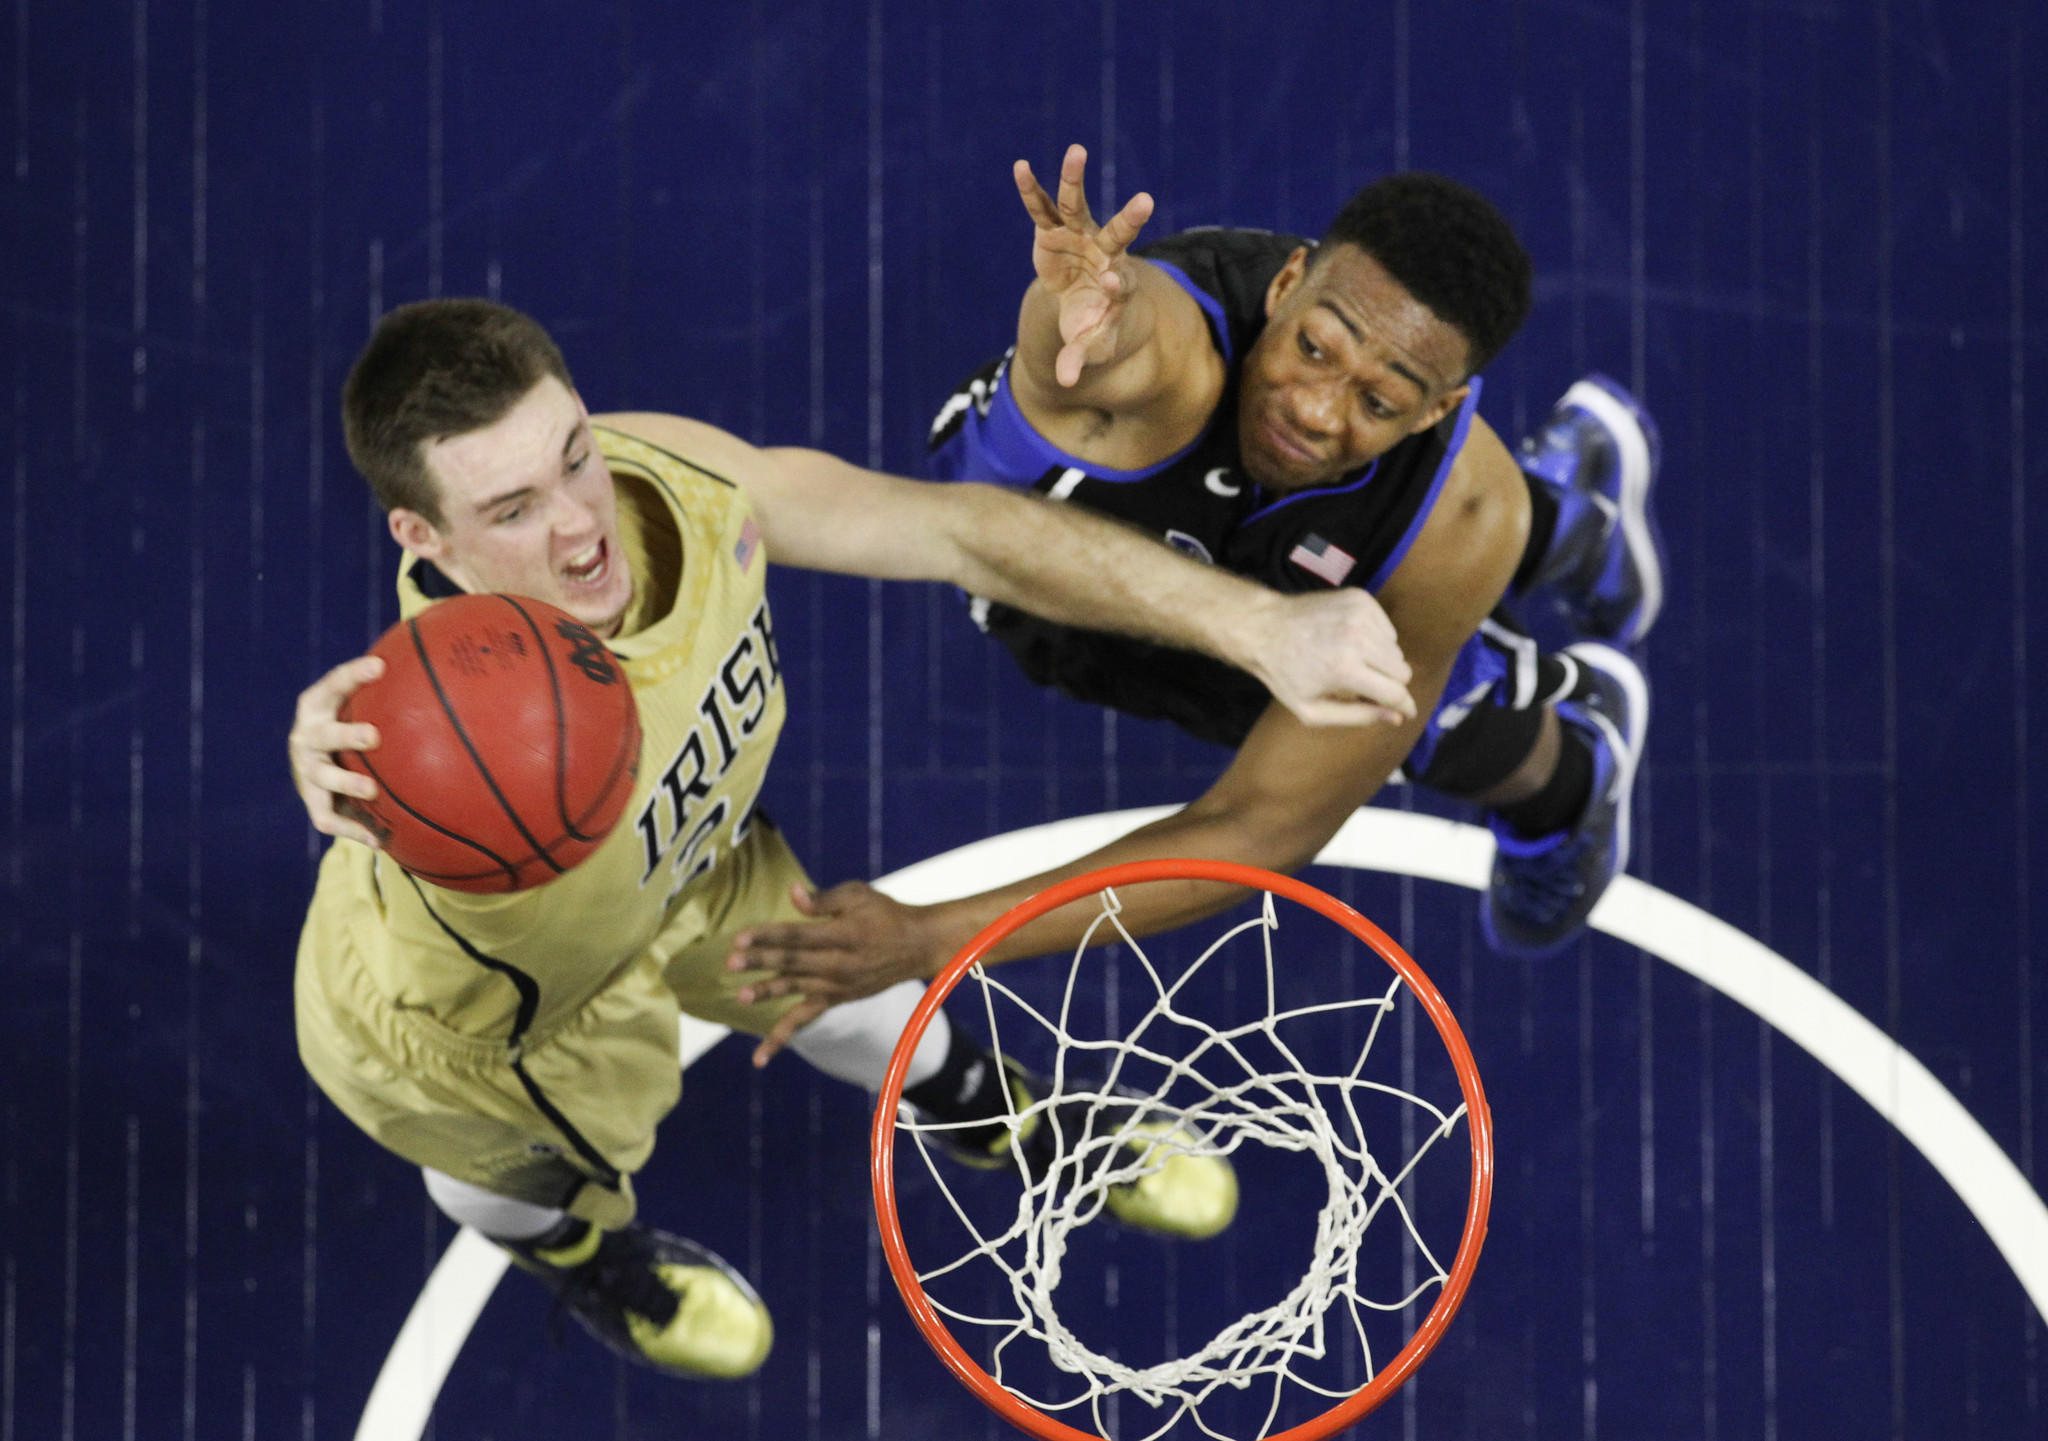 Duke's Jabari Parker is unable to stop Pat Connaughton from dunking during the second half of their game at the Purcell Pavilion at the Joyce Center.